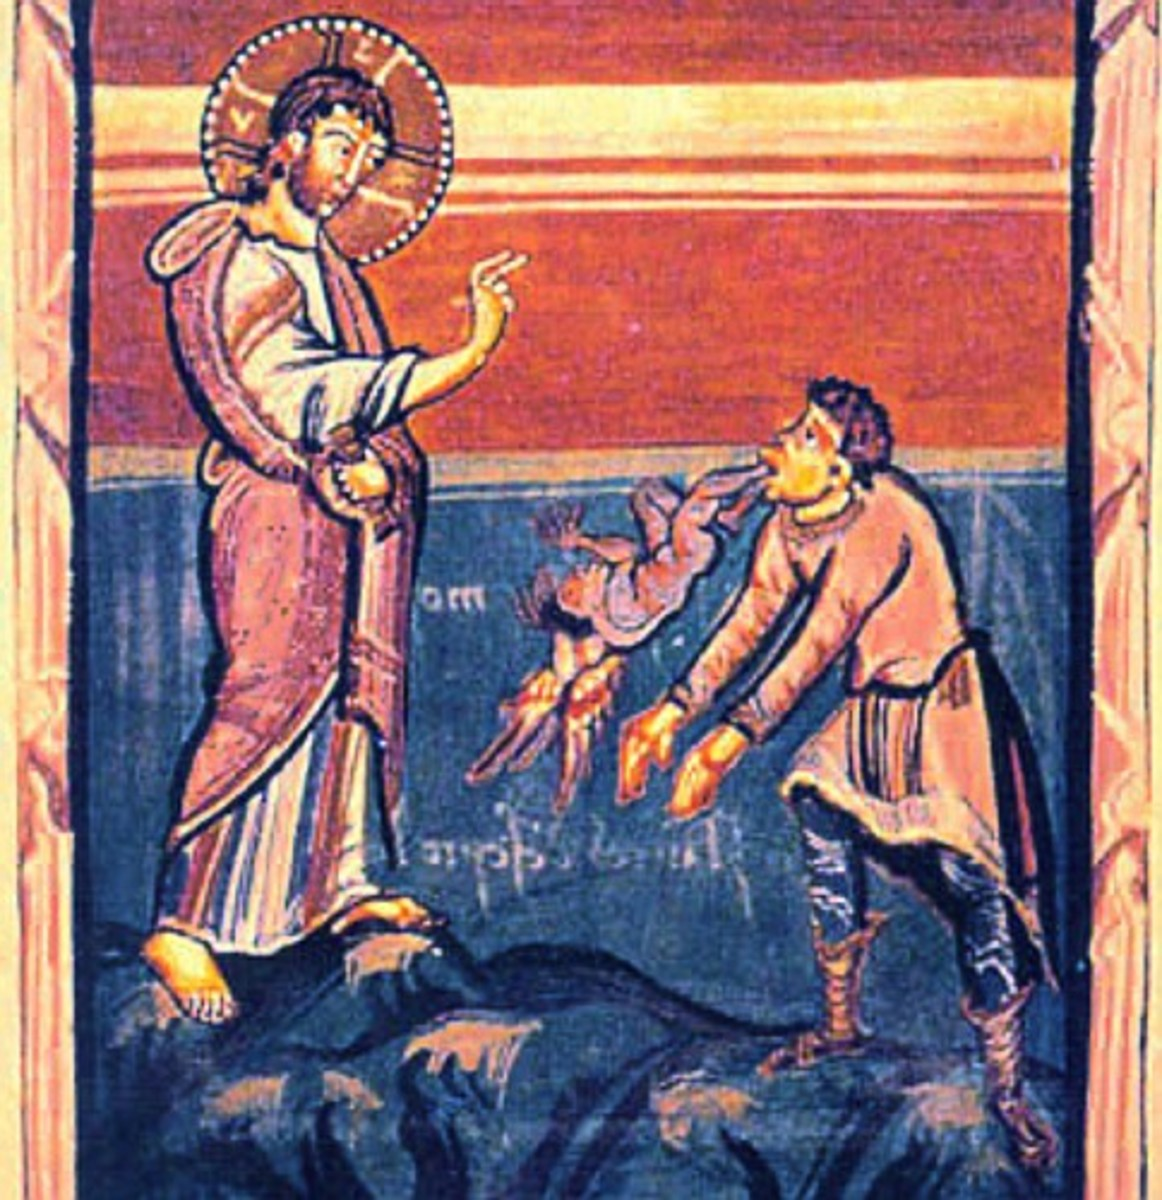 Jesus healing a demon-possessed man.